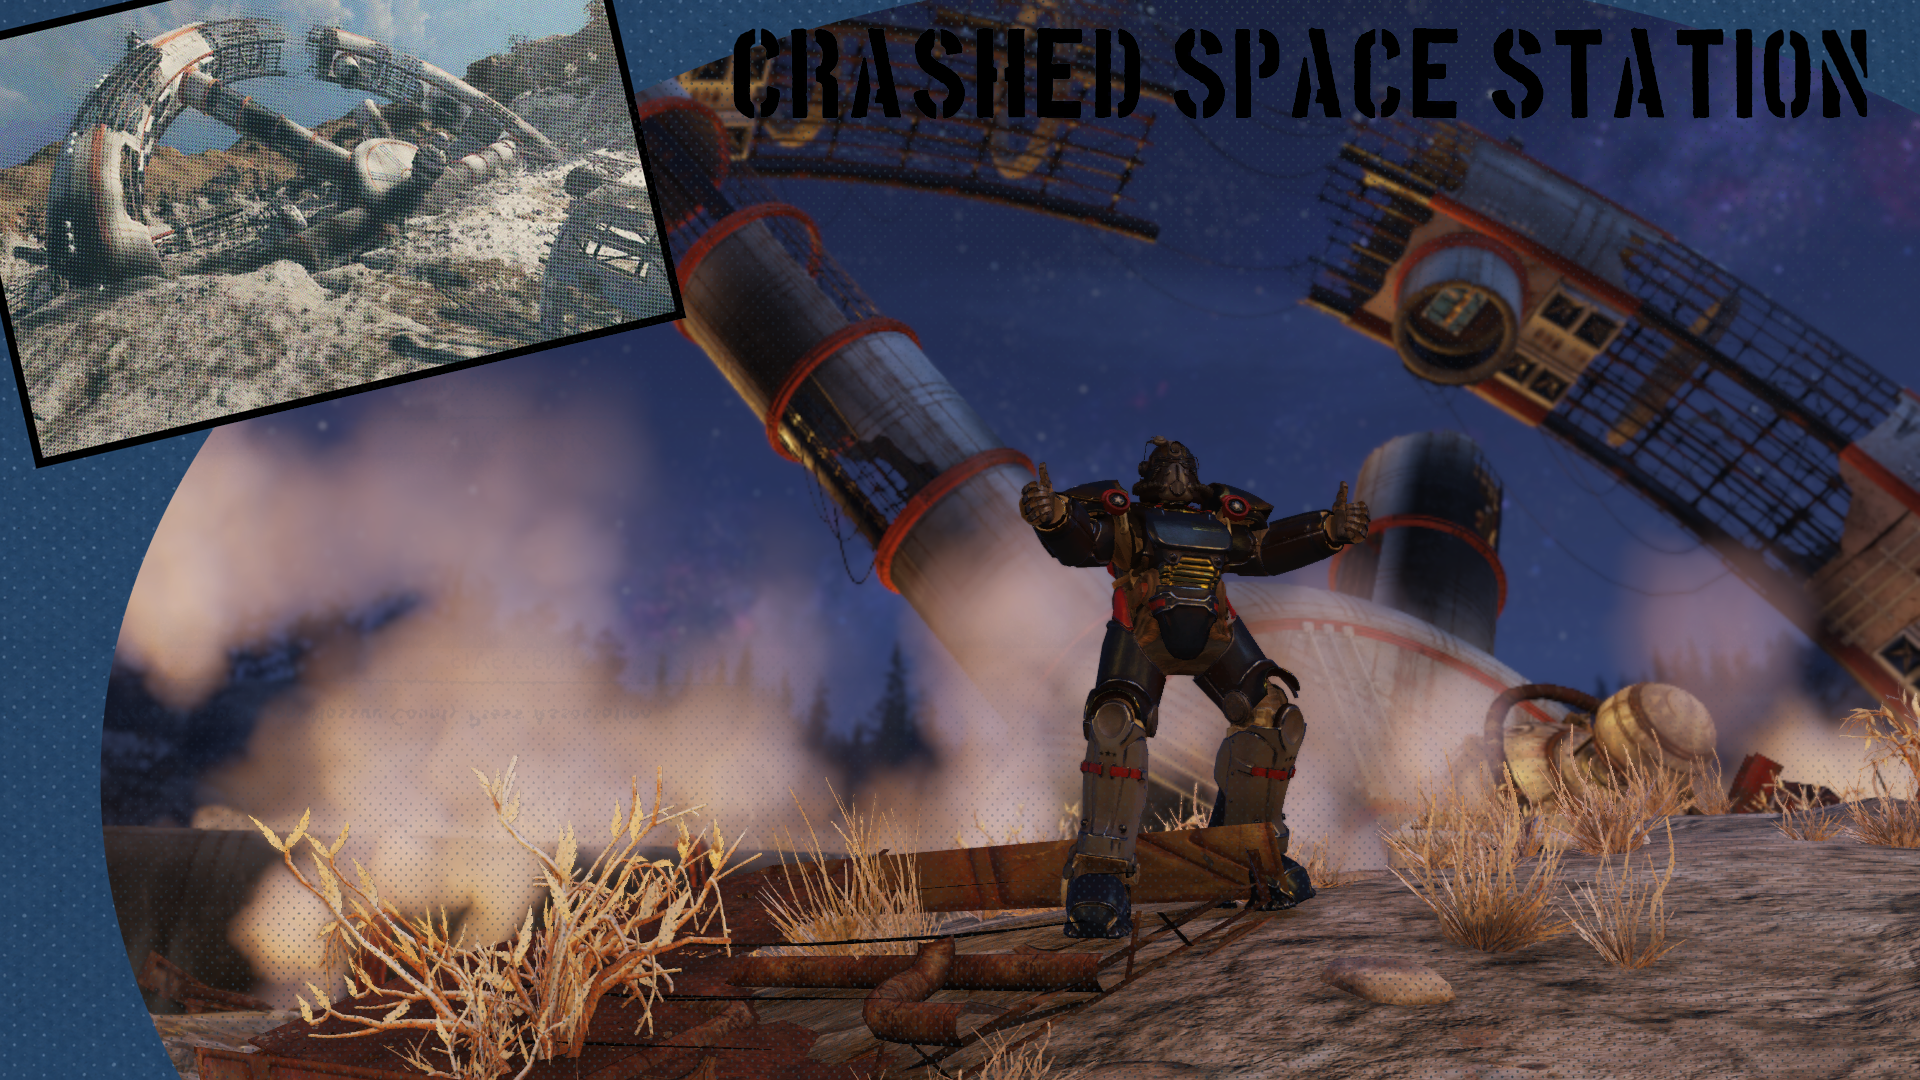 CRASHED SPACE STATION at Fallout 76 Nexus - Mods and community